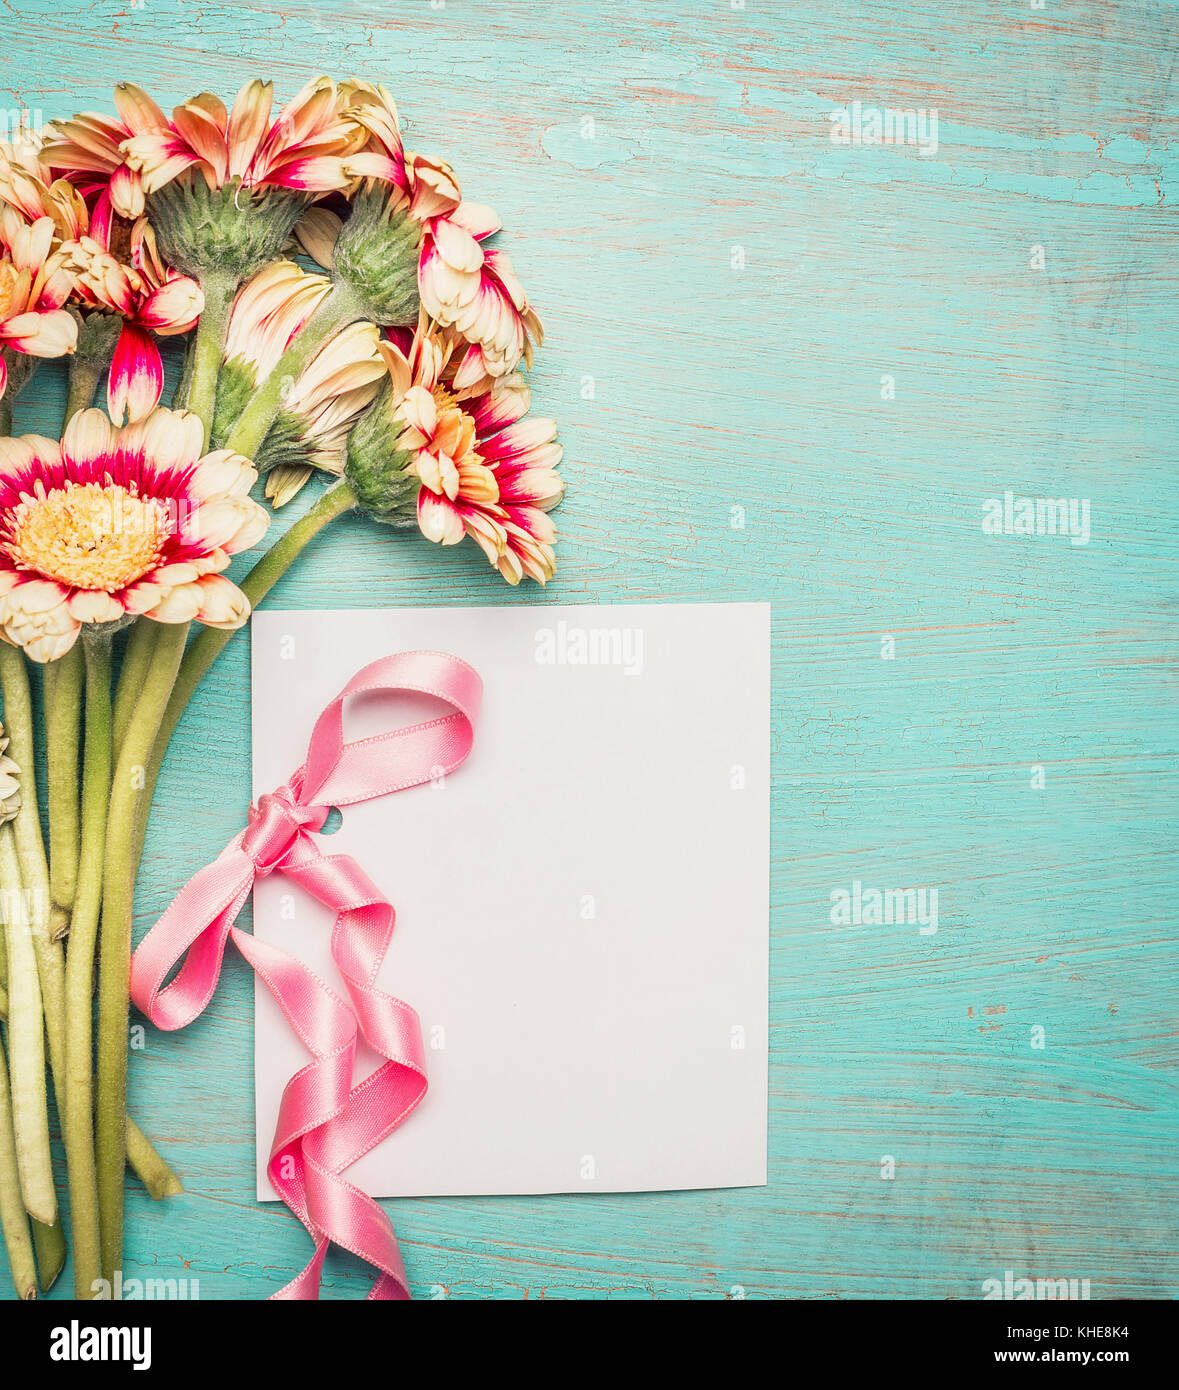 Flowers Bunch With Blank White Greeting Card And Pink Ribbon On